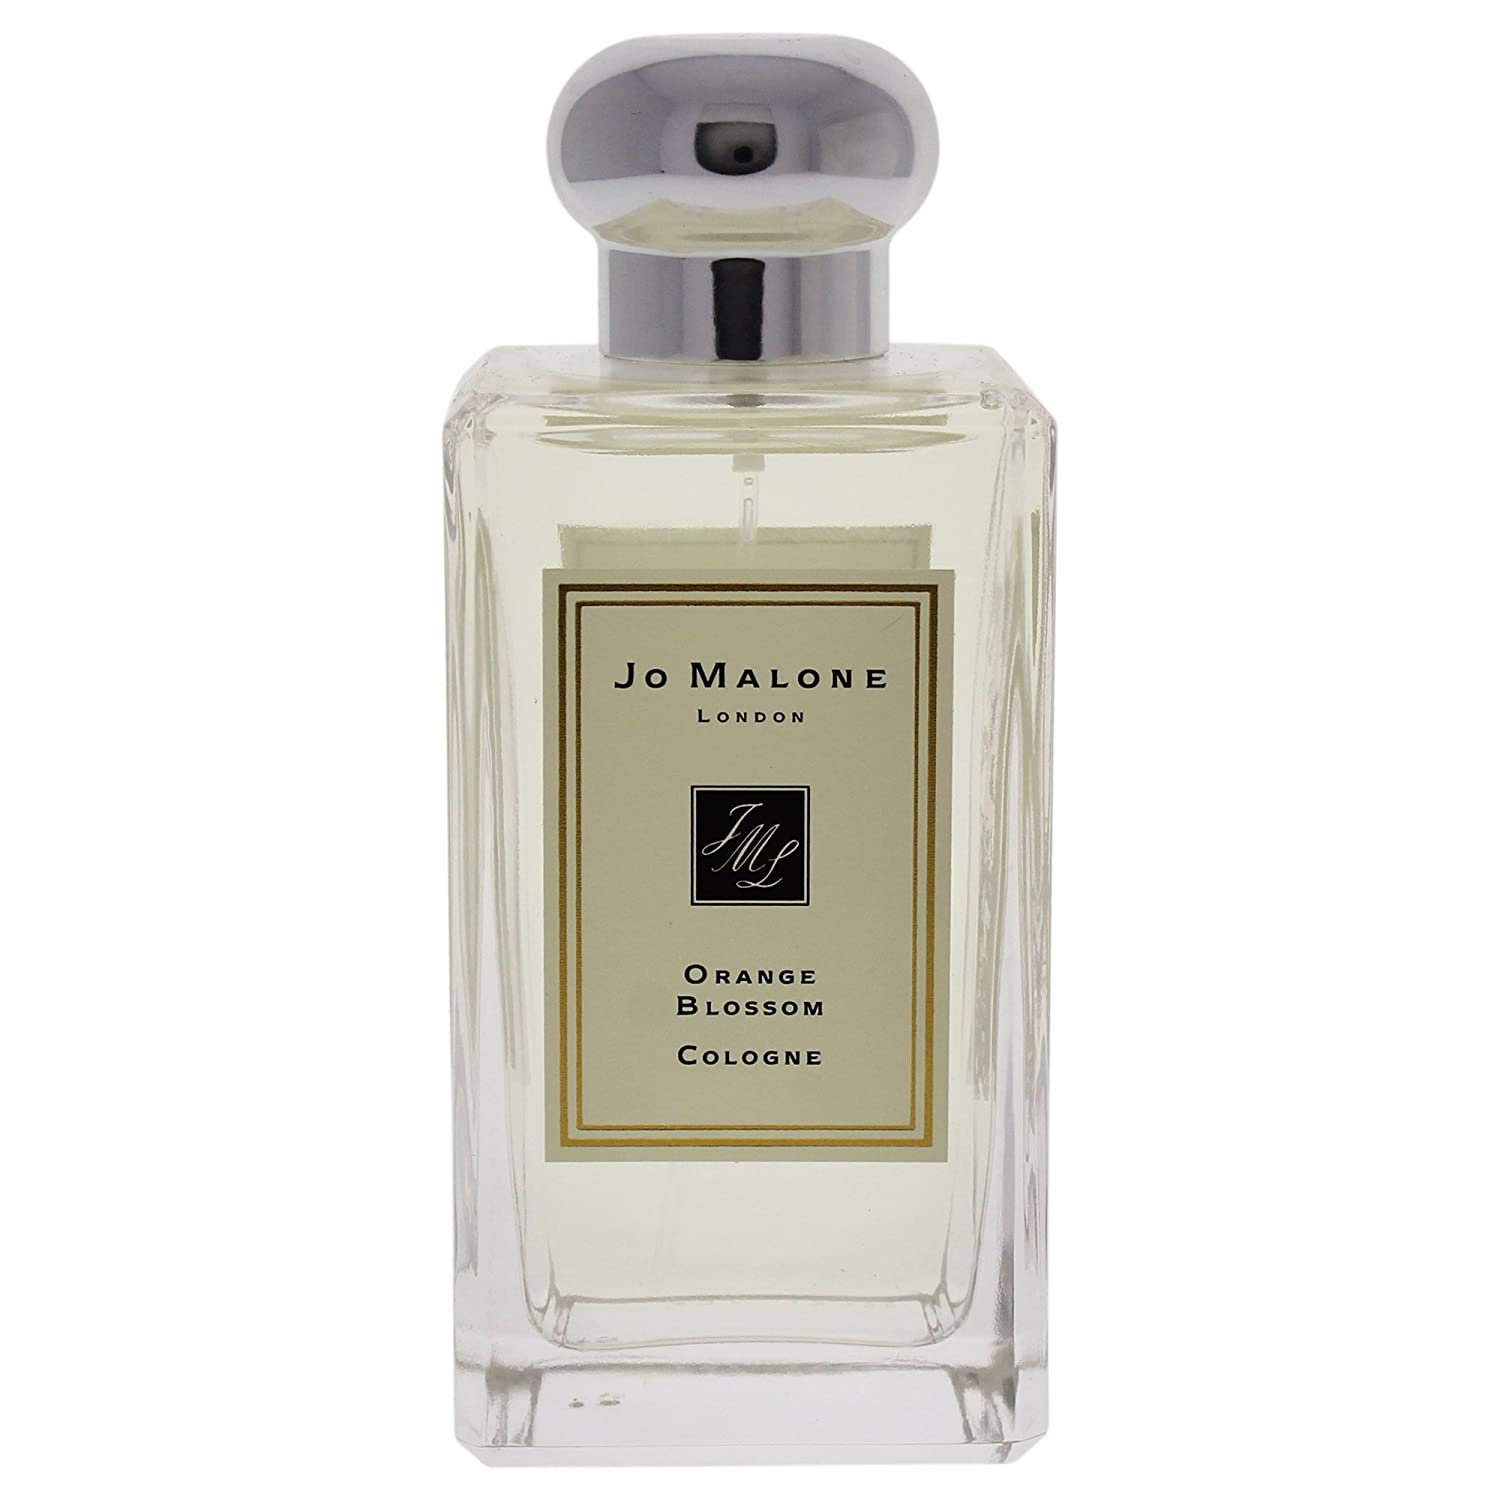 Amazon.com : Orange Blossom by Jo Malone 1.0 oz 30 ml Unisex Cologne : Beauty